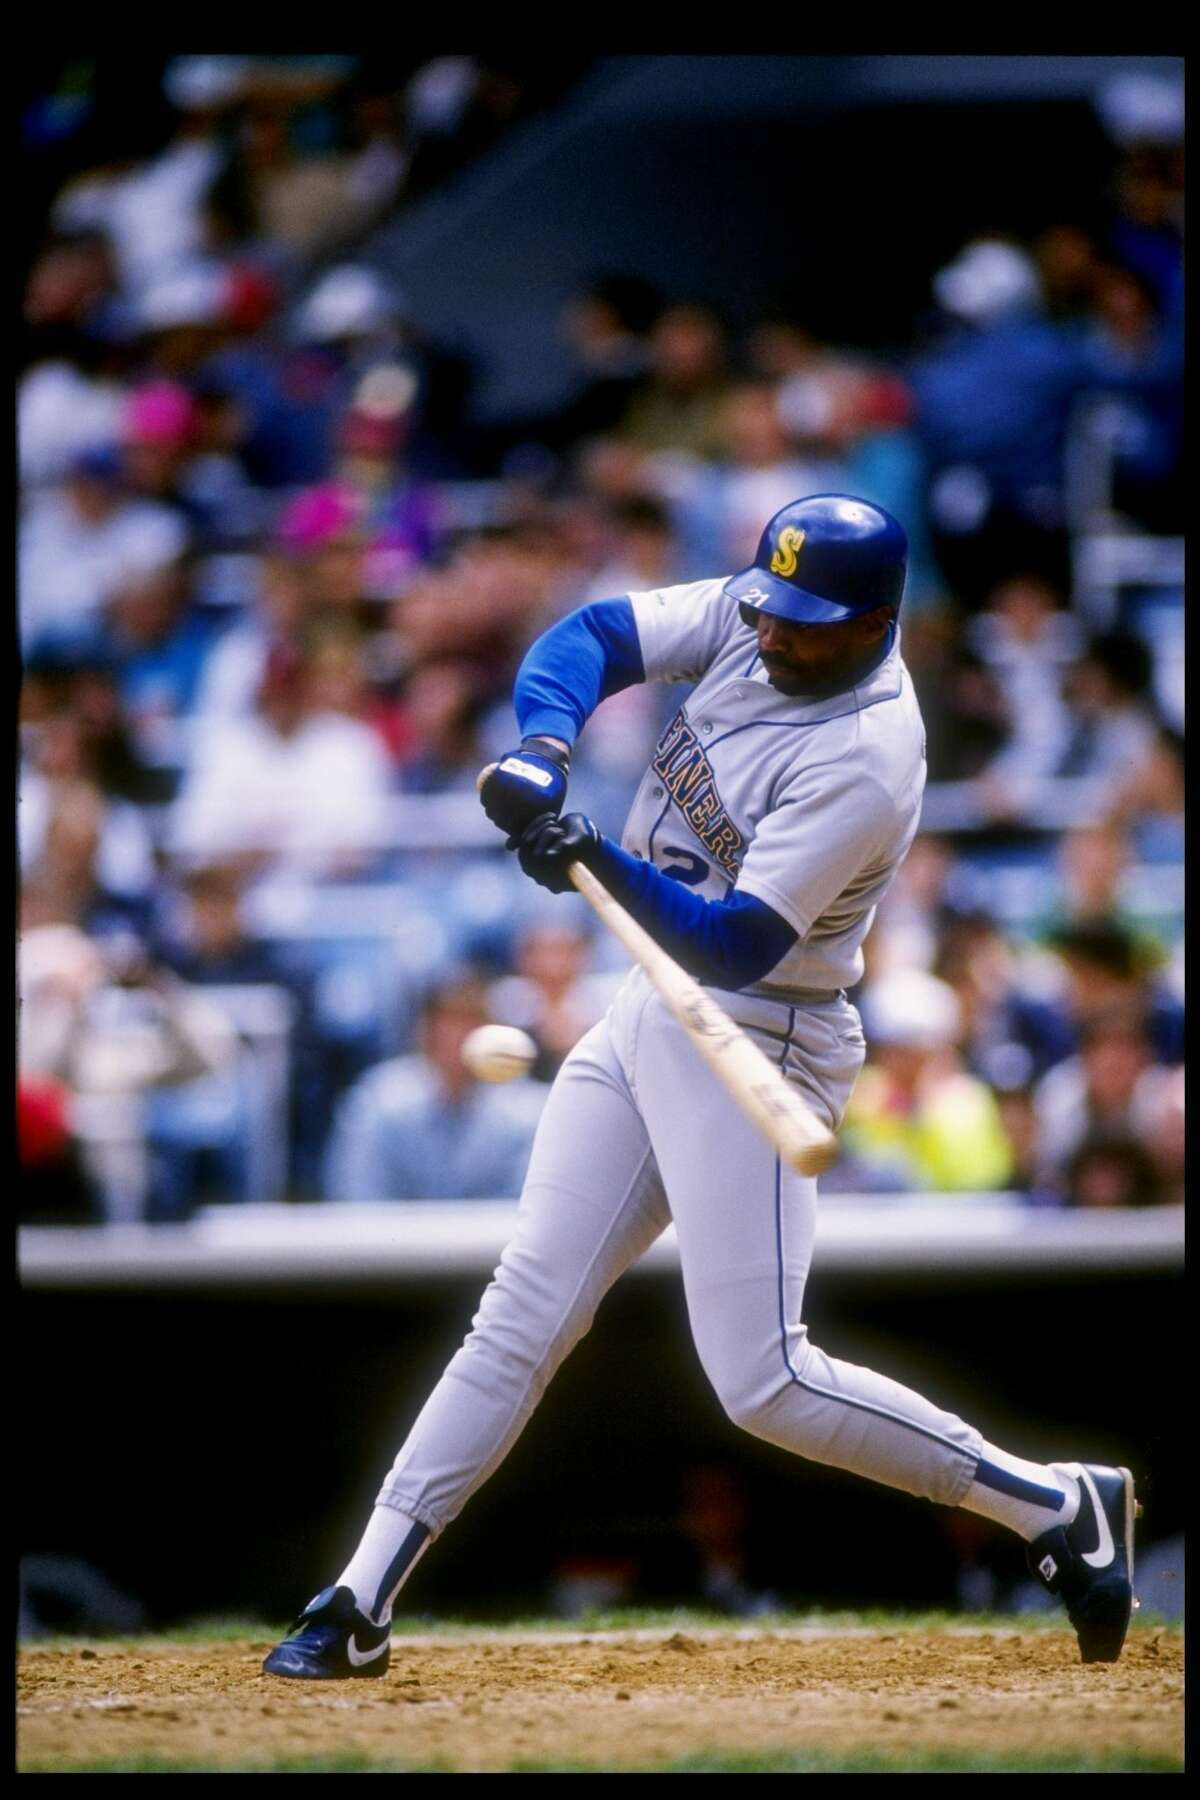 9. Alvin Davis, first baseman Stats in eight seasons: 1,166 games, .281/.381/.453, 1,163 hits, 160 home runs, 683 RBIs, one All-Star appearance, 1984 Rookie of the Year Davis provided a solid, everyday presence in the Mariners lineup. He played in at least 135 games every season and maintained a batting average between .271 and .305 every year but one. He was considered a smart ballplayer, leading the league in sacrifices one year and working the fourth-highest total of walks (672) in franchise history despite playing far fewer games than his teammates. Davis ranks in the top six of nearly every major Mariners hitting category.